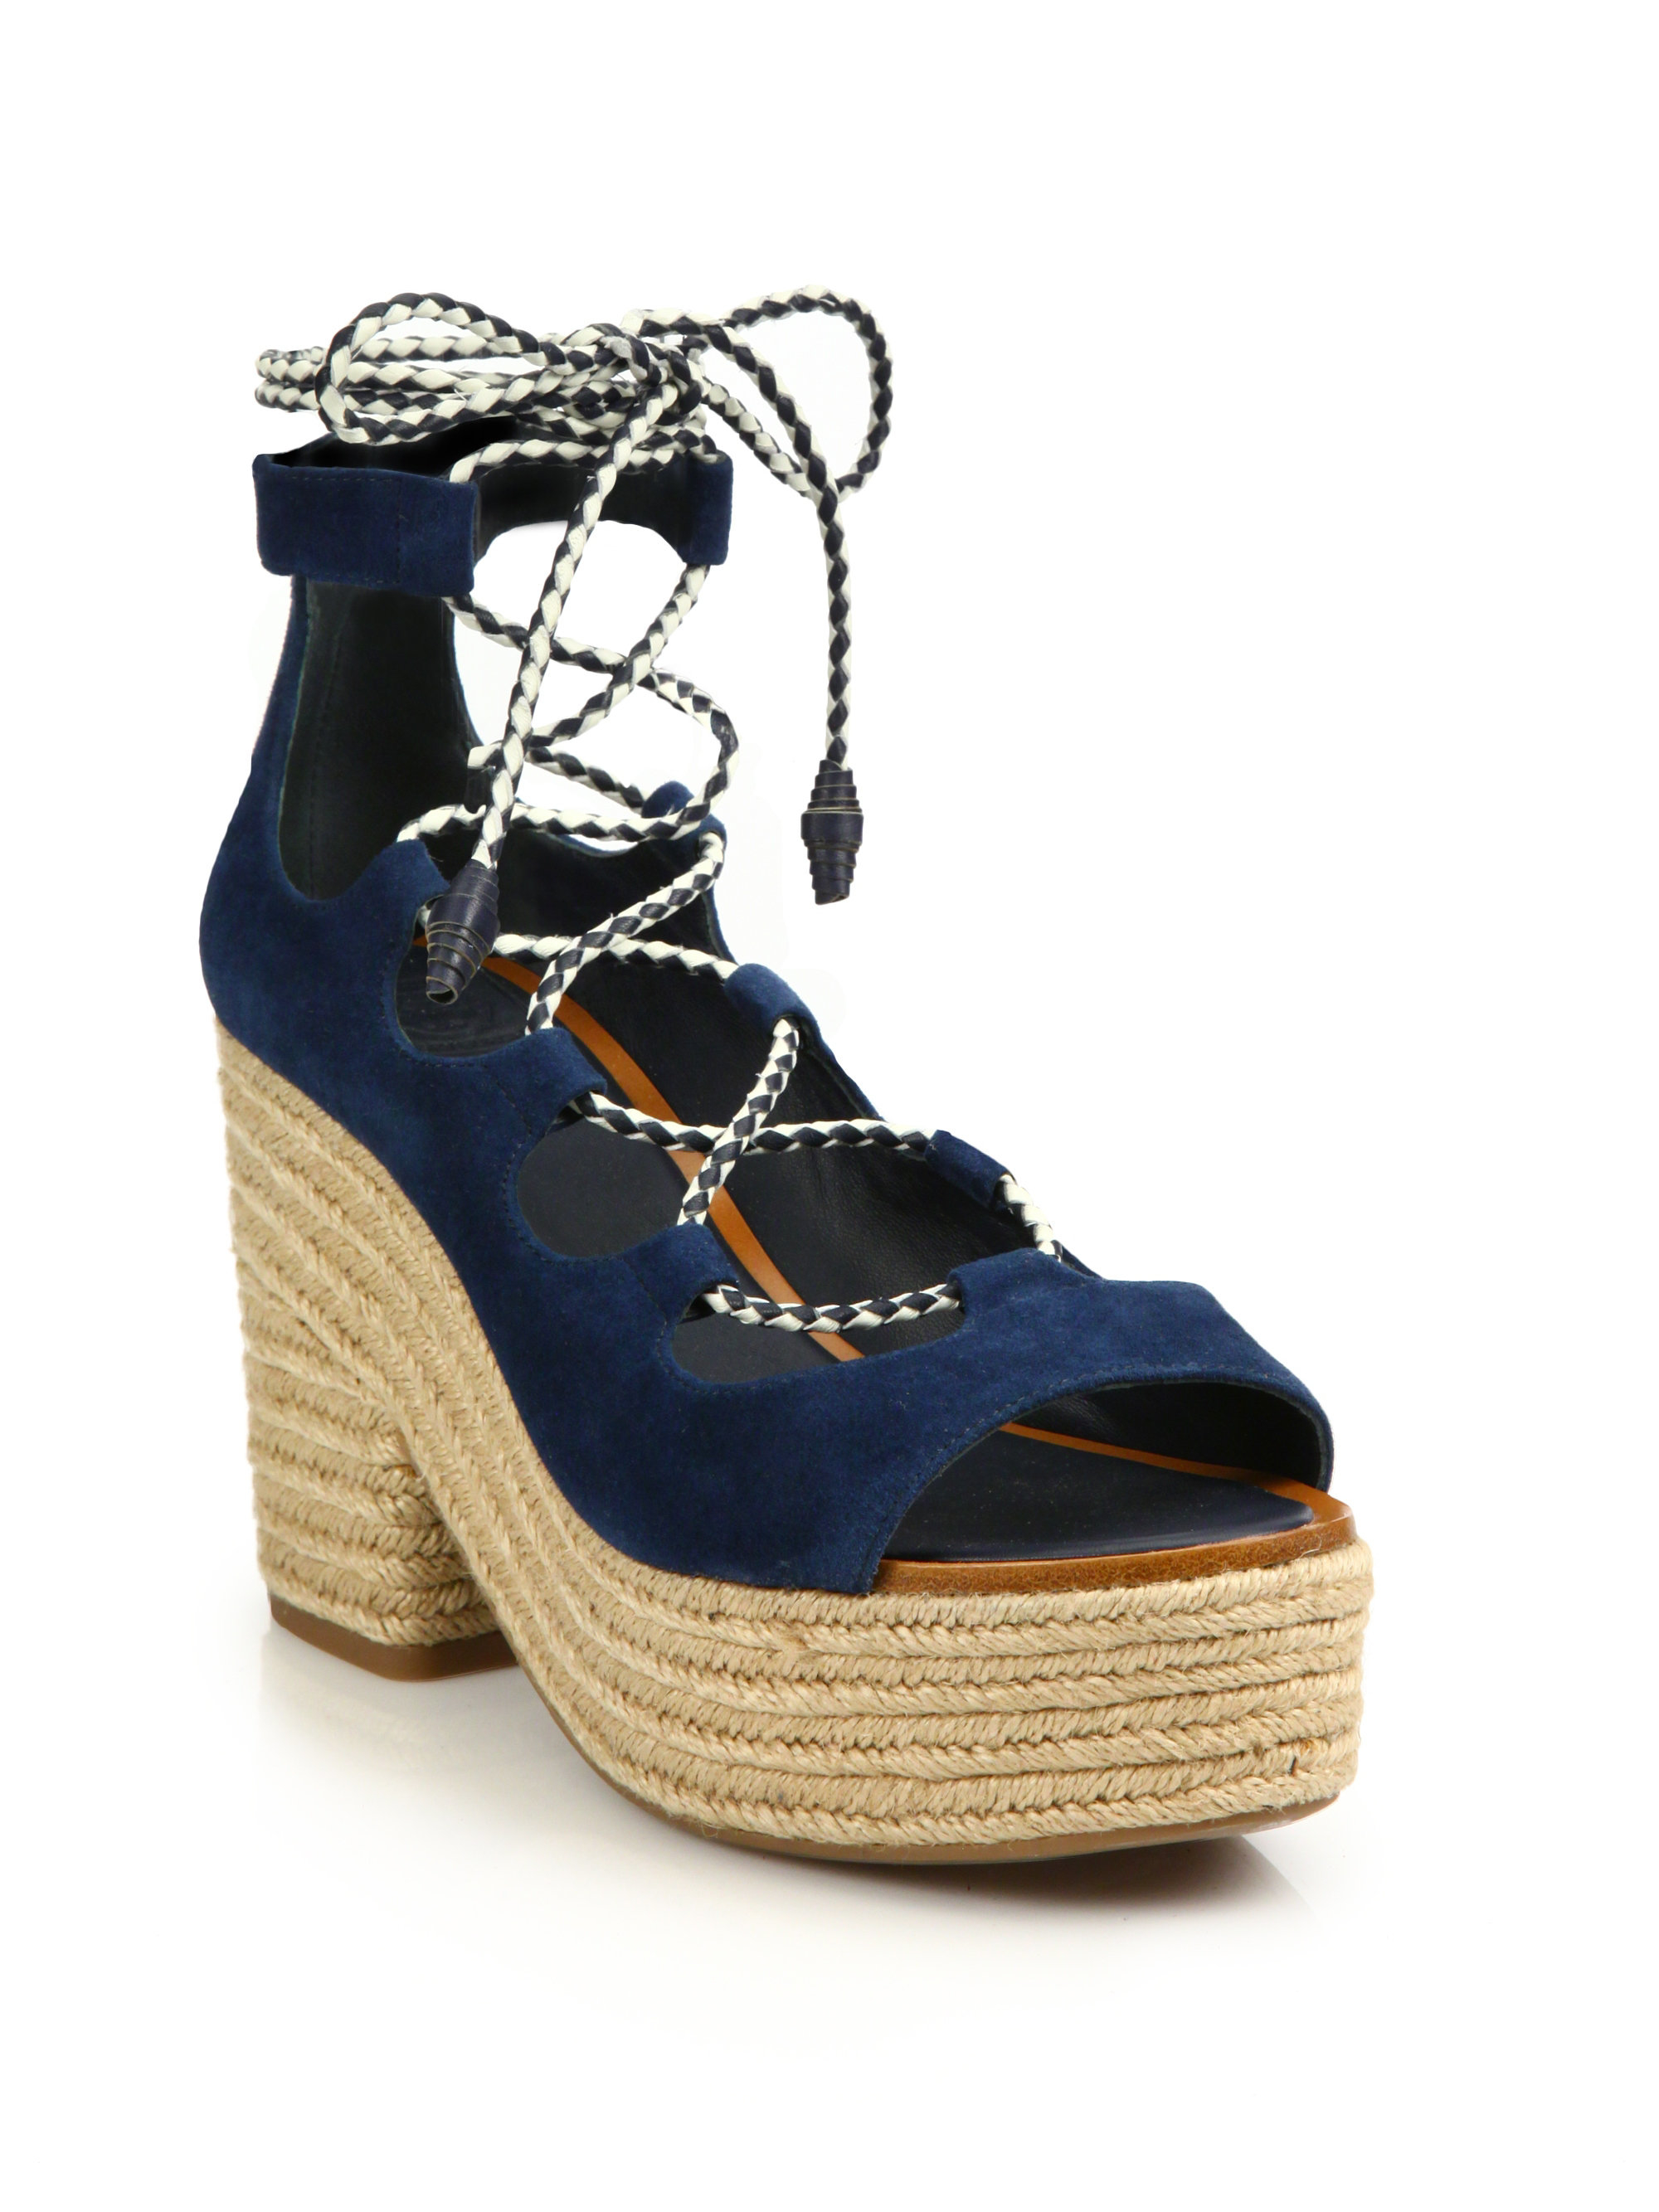 8b82f1b0623 Lyst - Tory Burch Positano Suede Lace-up Espadrille Platform Sandals ...